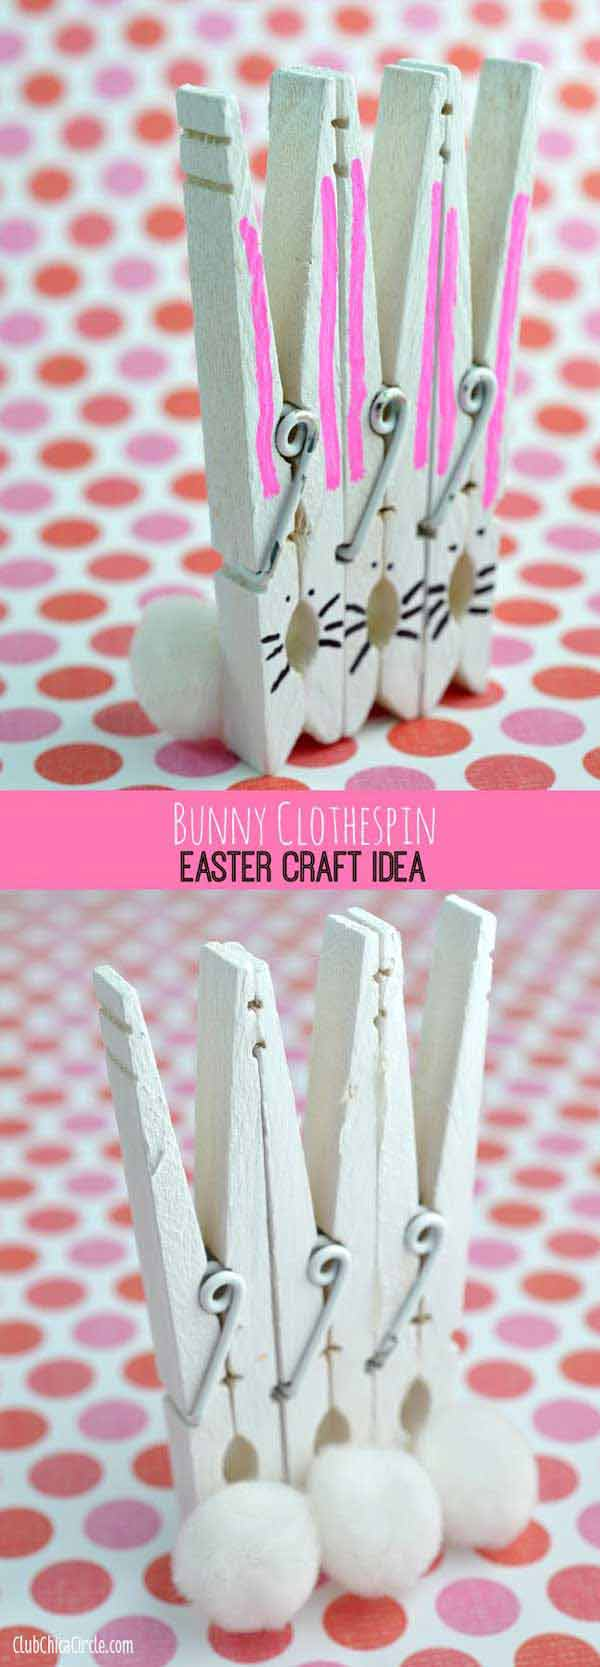 DIYs-Can-Make-With-Clothespins-7-2